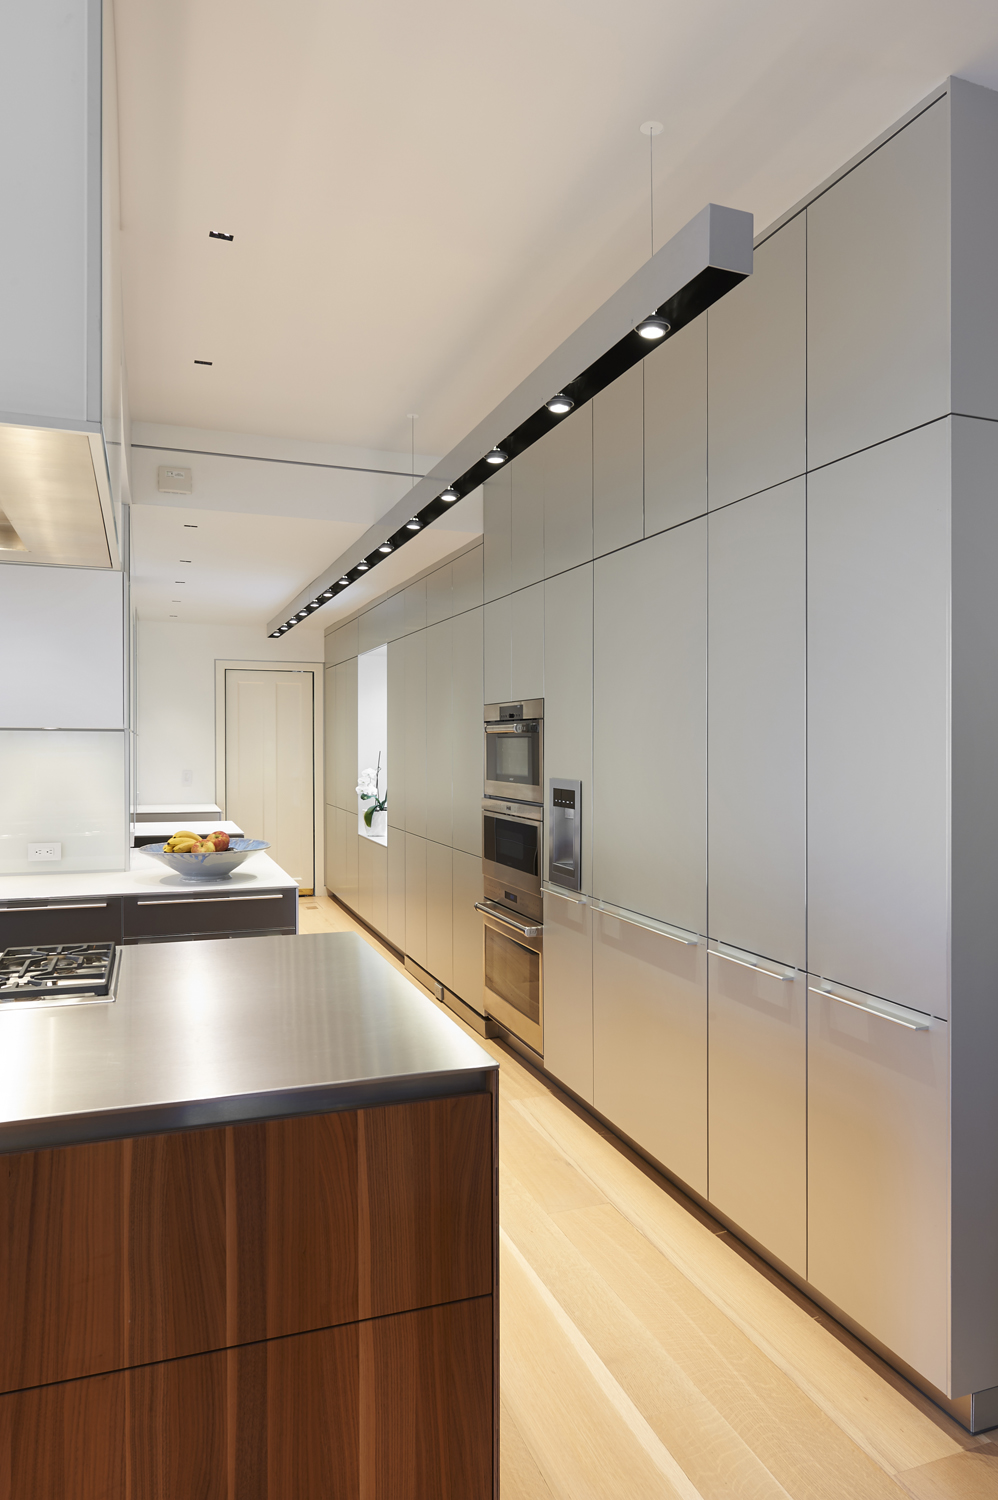 Colonial-renovation-addtion-Bulthaup-kitchen-oven-riverside-ct-interior-w.jpg